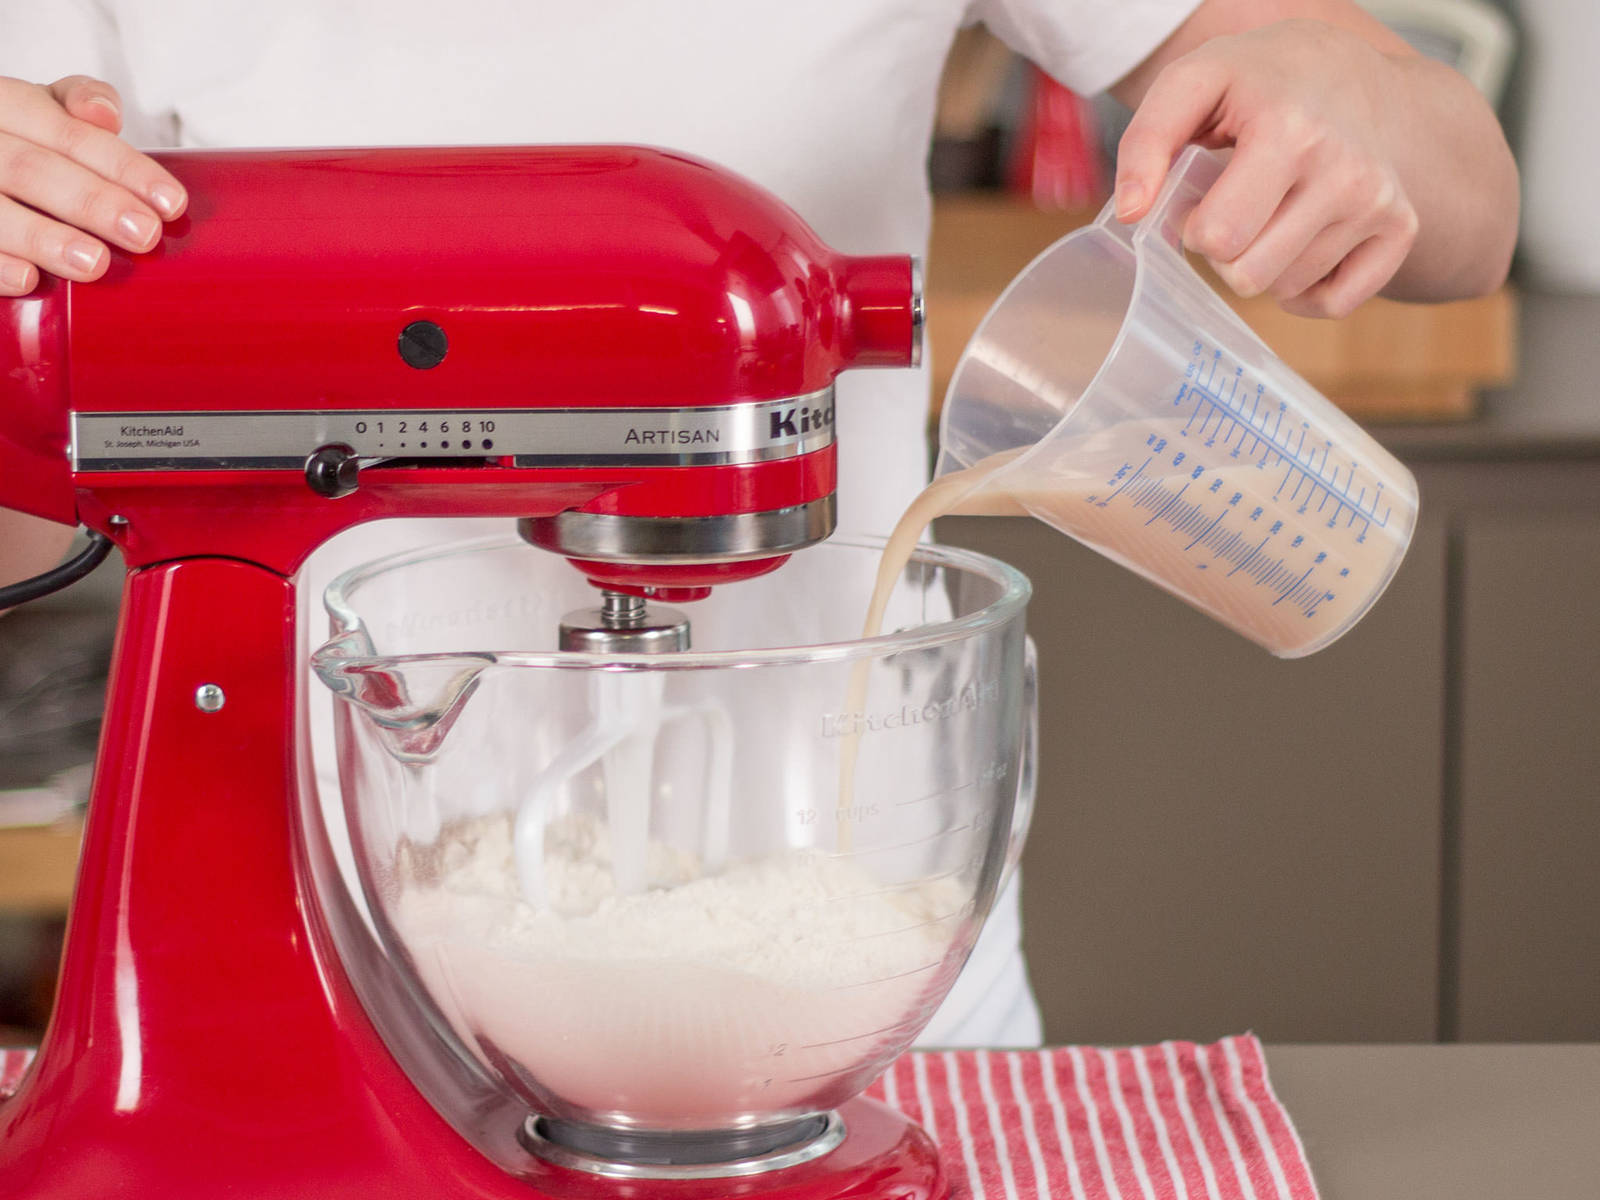 Dissolve yeast and part of sugar in lukewarm water and then add mixture to a standing mixer with flour. Beat until a smooth, even dough forms. Cover and let rise in a warm place for approx. 15 – 20 min. until dough has doubled in volume.